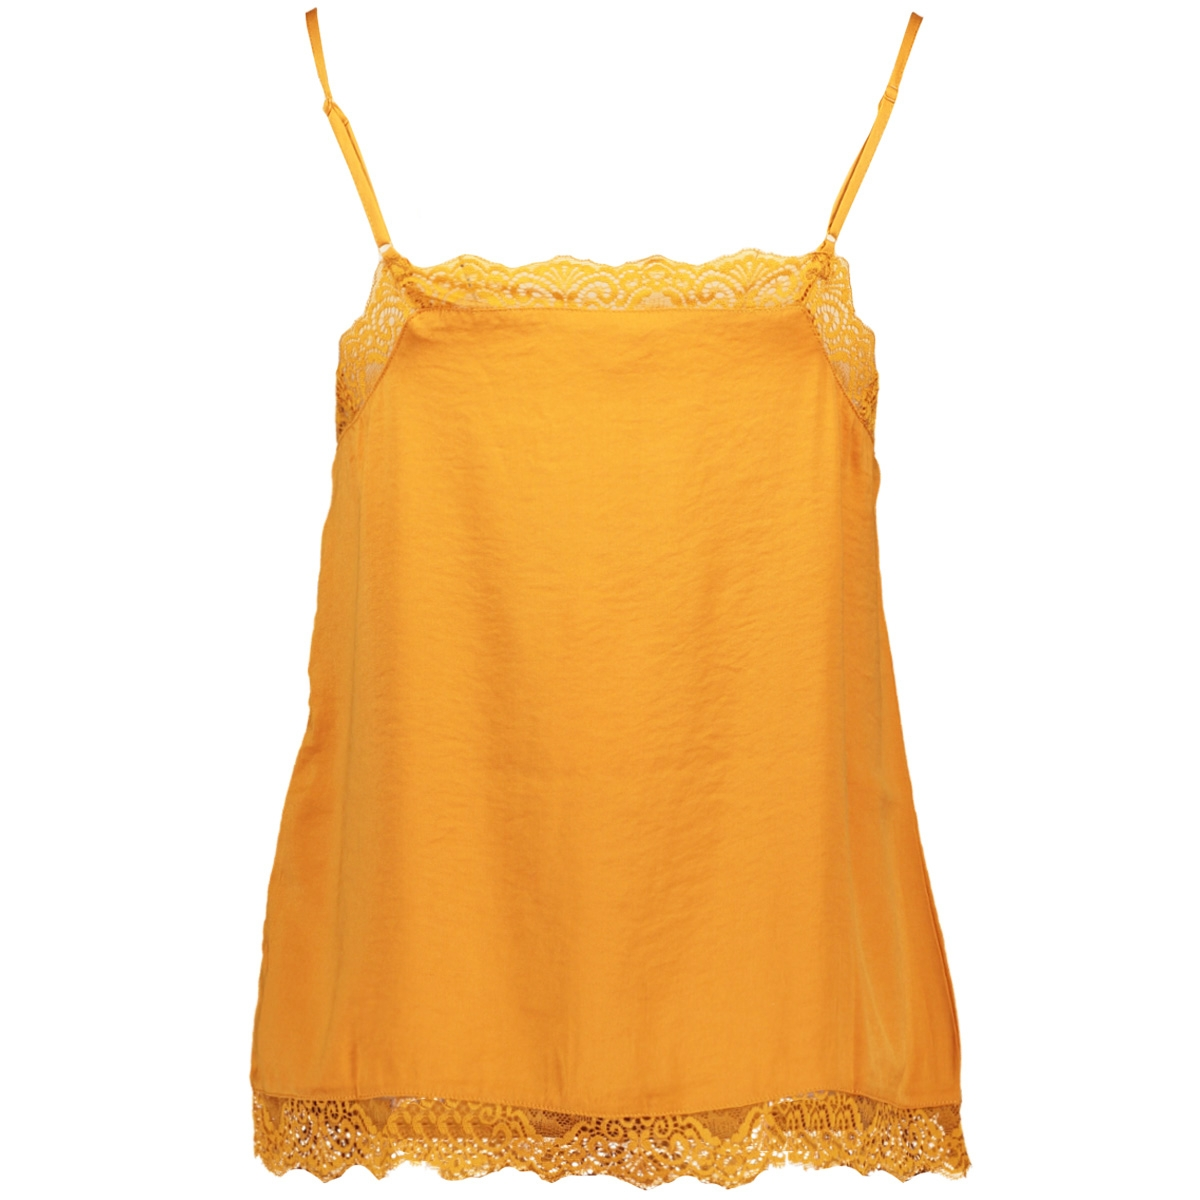 vicava lace singlet - noos 14044577 vila top golden oak